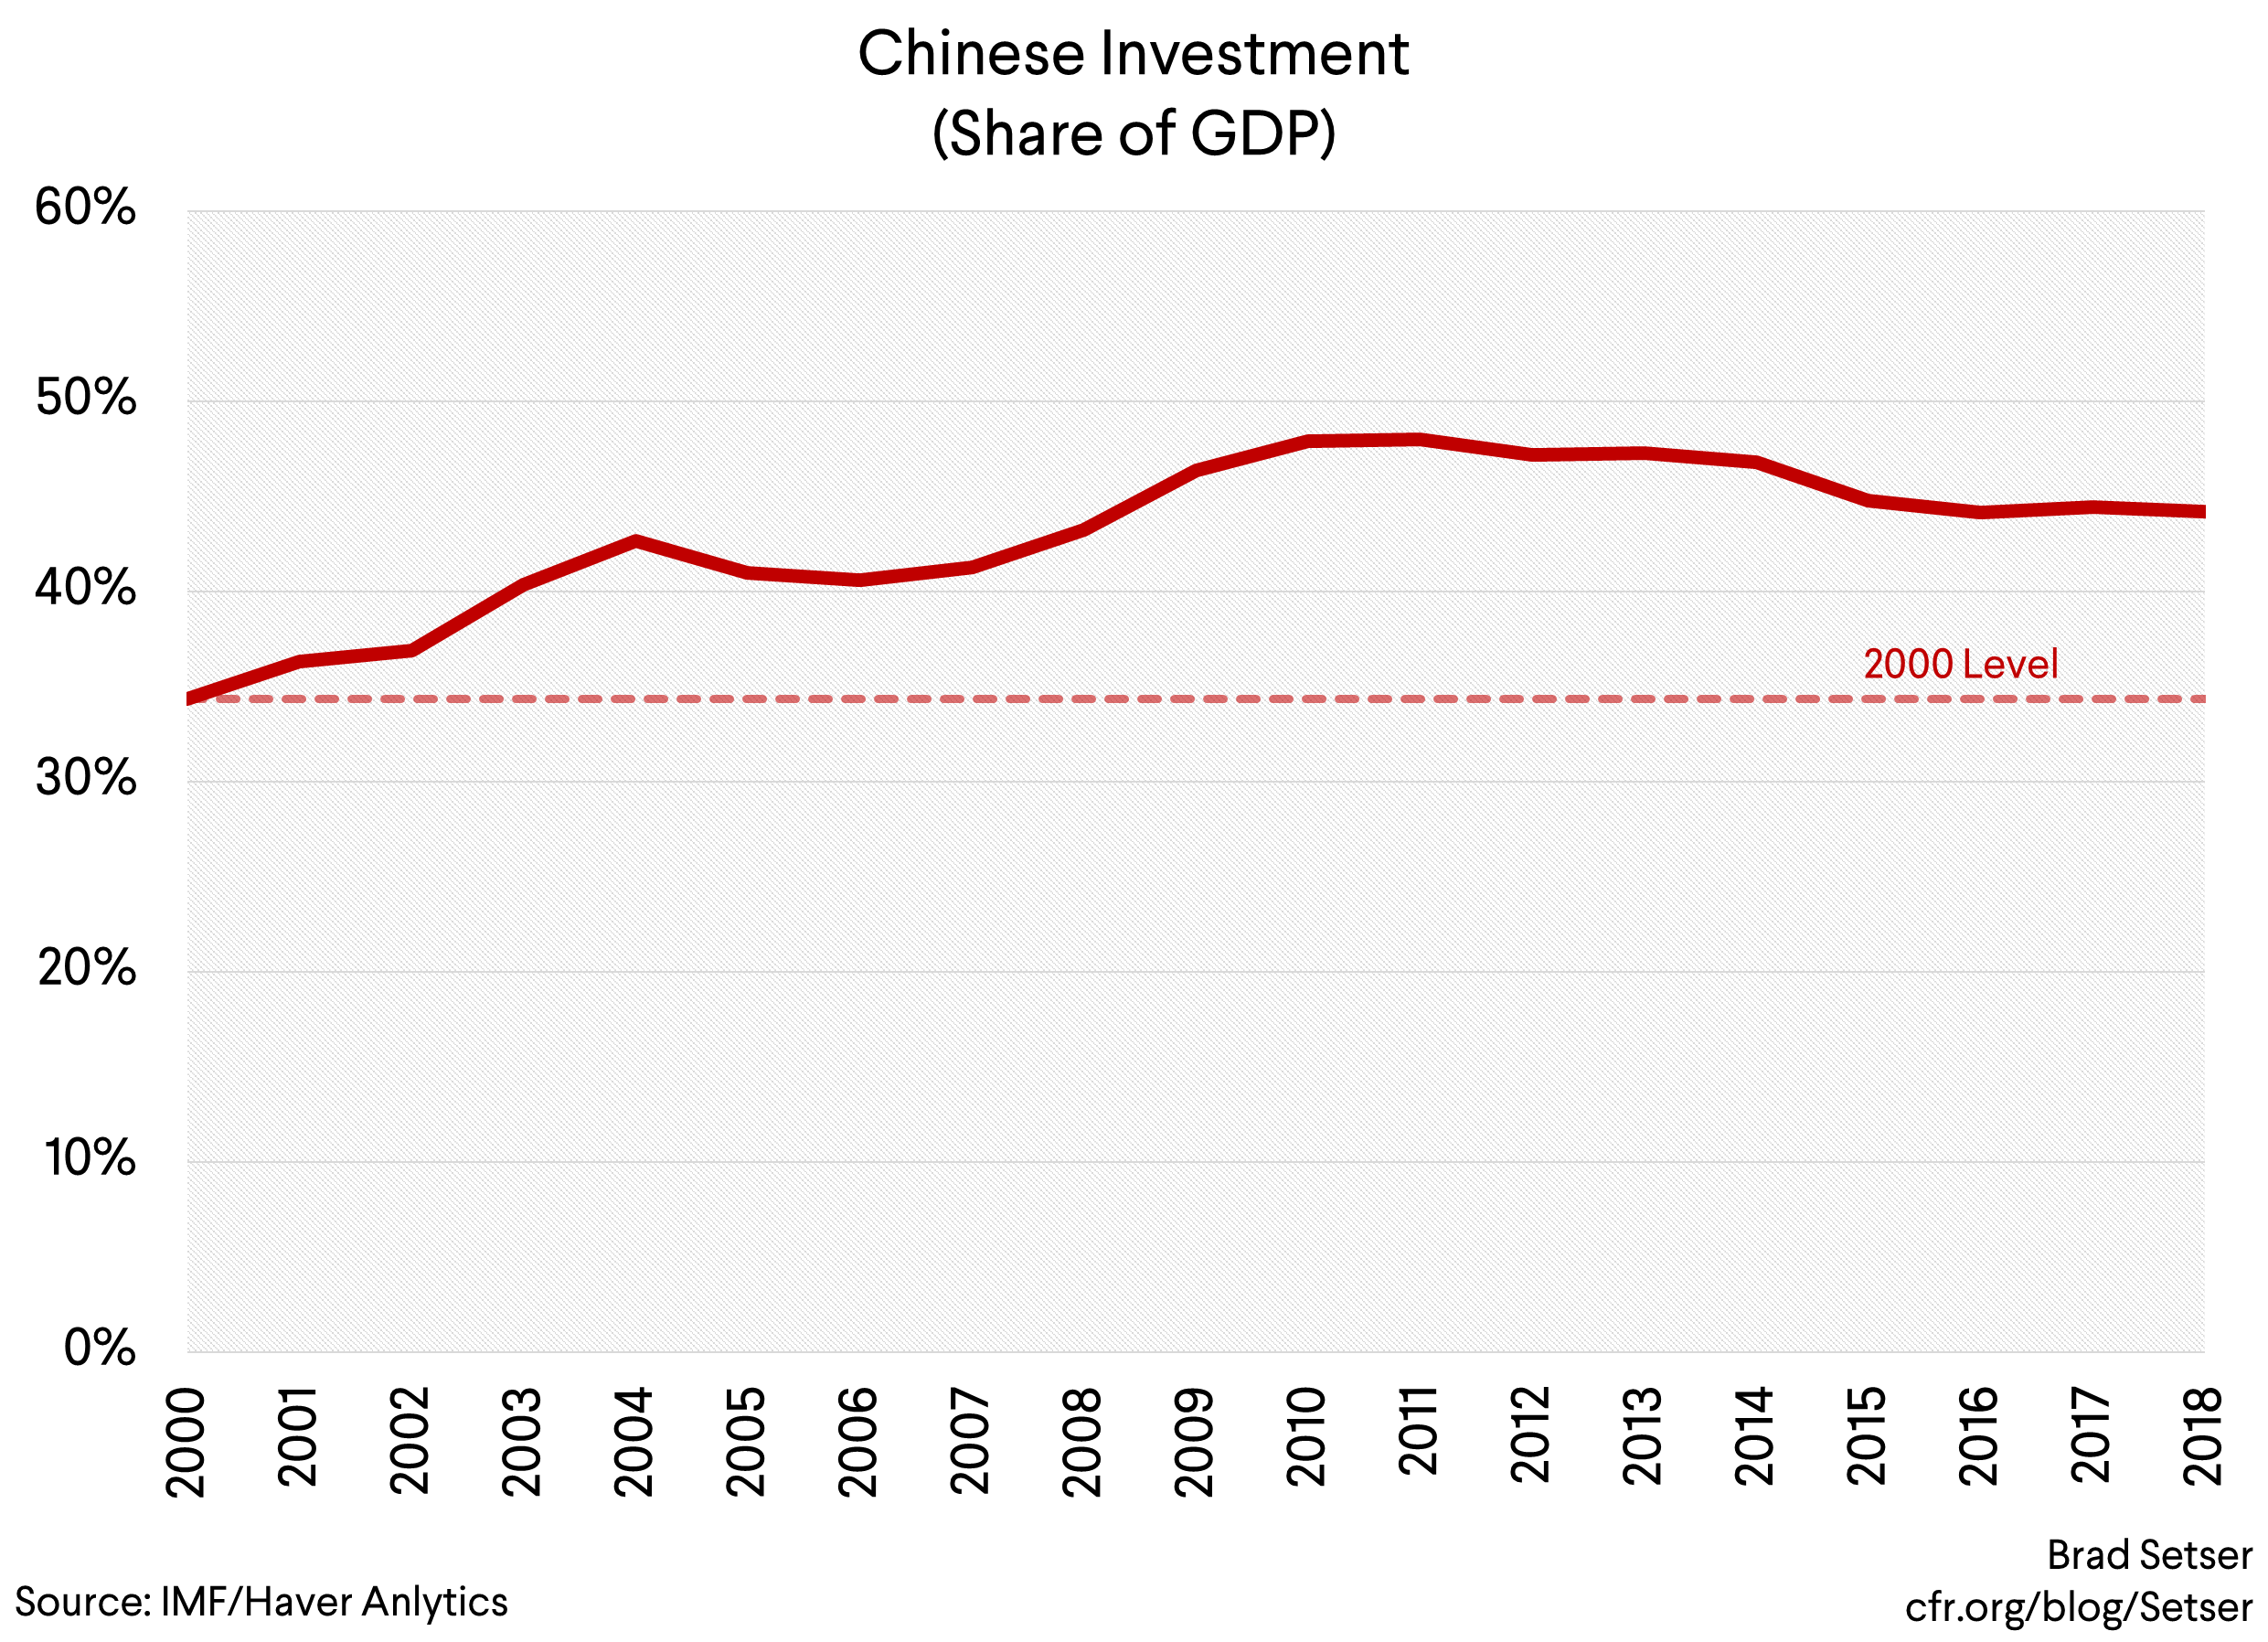 China's Still-Too-High Savings Makes China 2025 a Bigger Global Risk